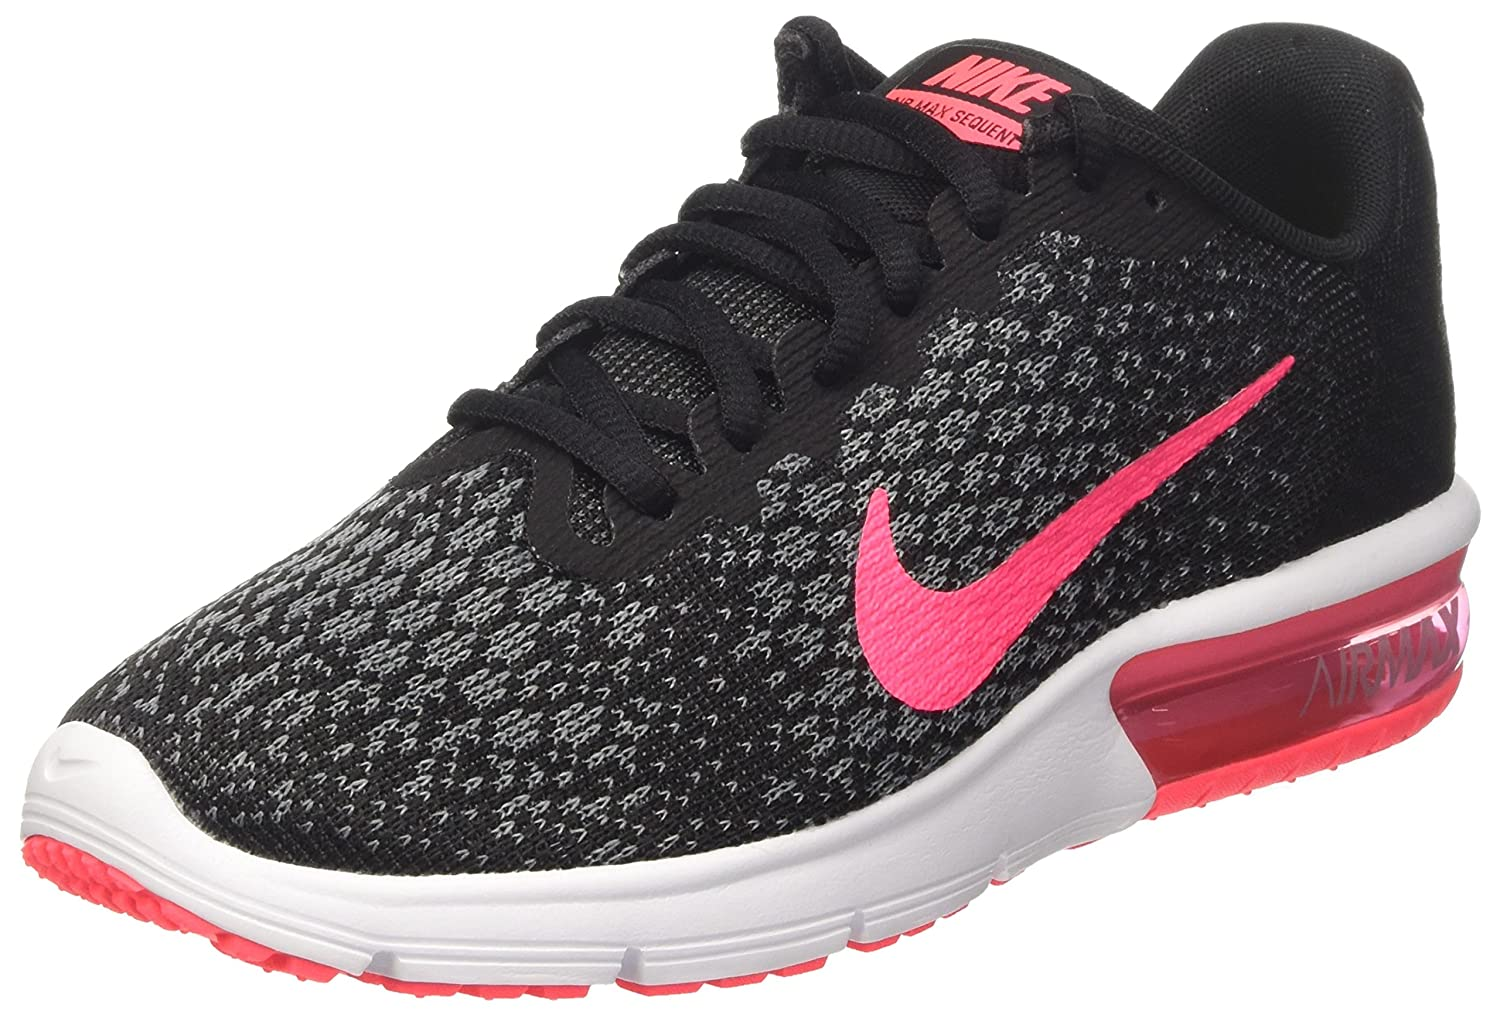 NIKE Men's Air Max Sequent 2 Running Shoe B01K2LVJ88 7.5 B(M) US|Black/Racer Pink/Anthracite/Cool Grey